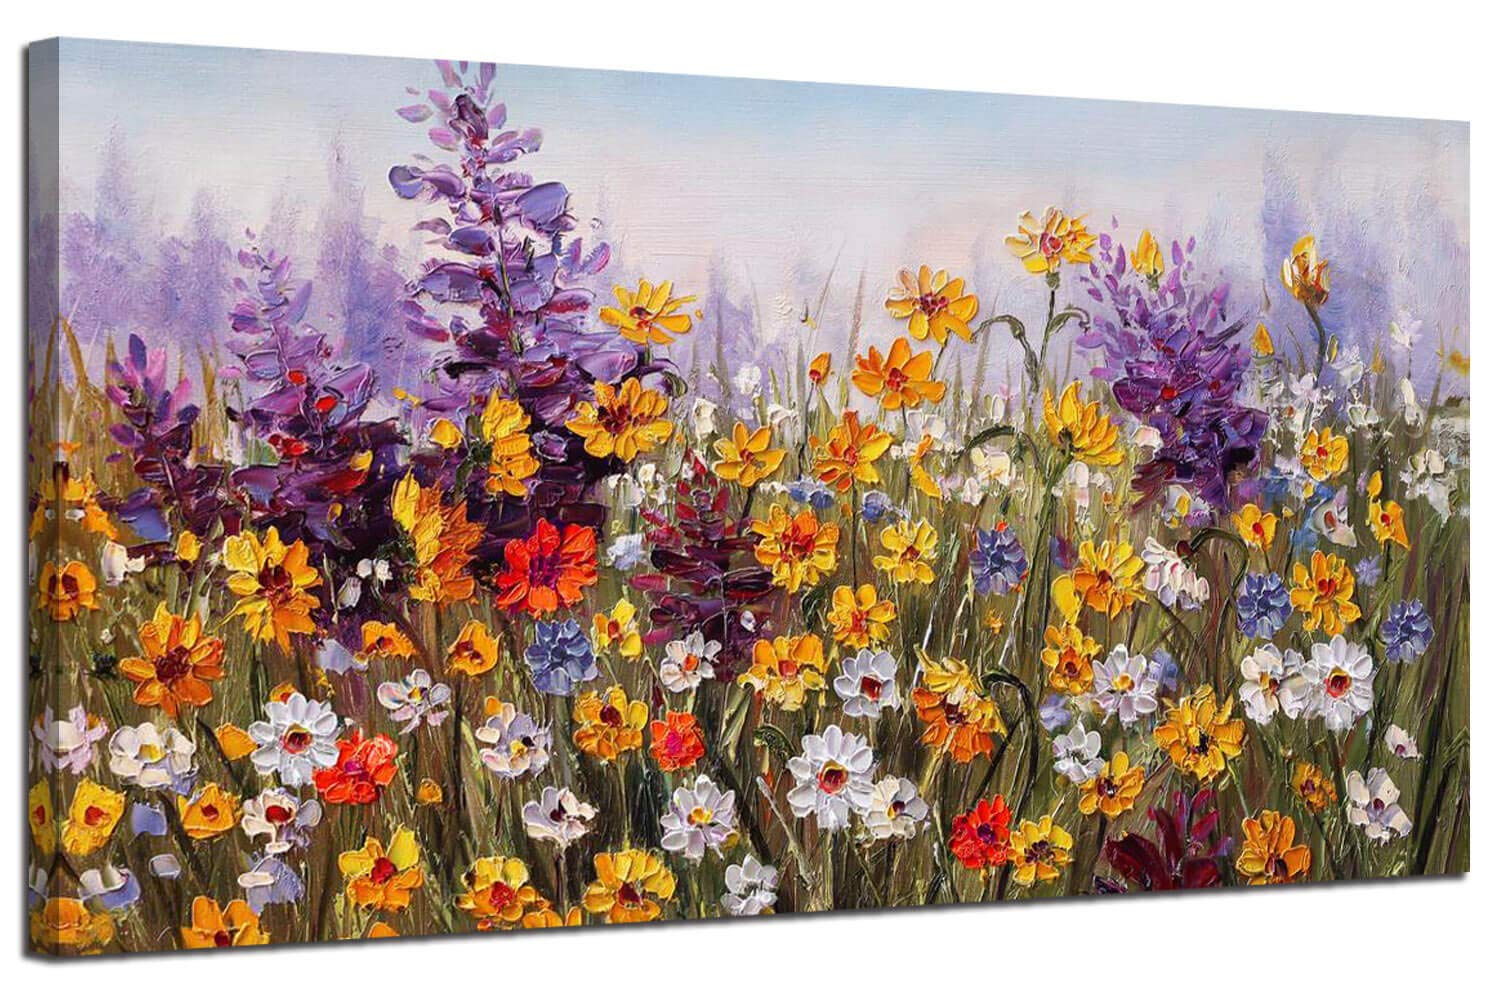 Ardemy Canvas Wall Art Daisy Colorful Bloosom Yellow Flowers Artwork Painting Prints Modern Picture Framed Ready to Hang for Living Room Bedroom Kitchen Office Home Decorations-40inx20in